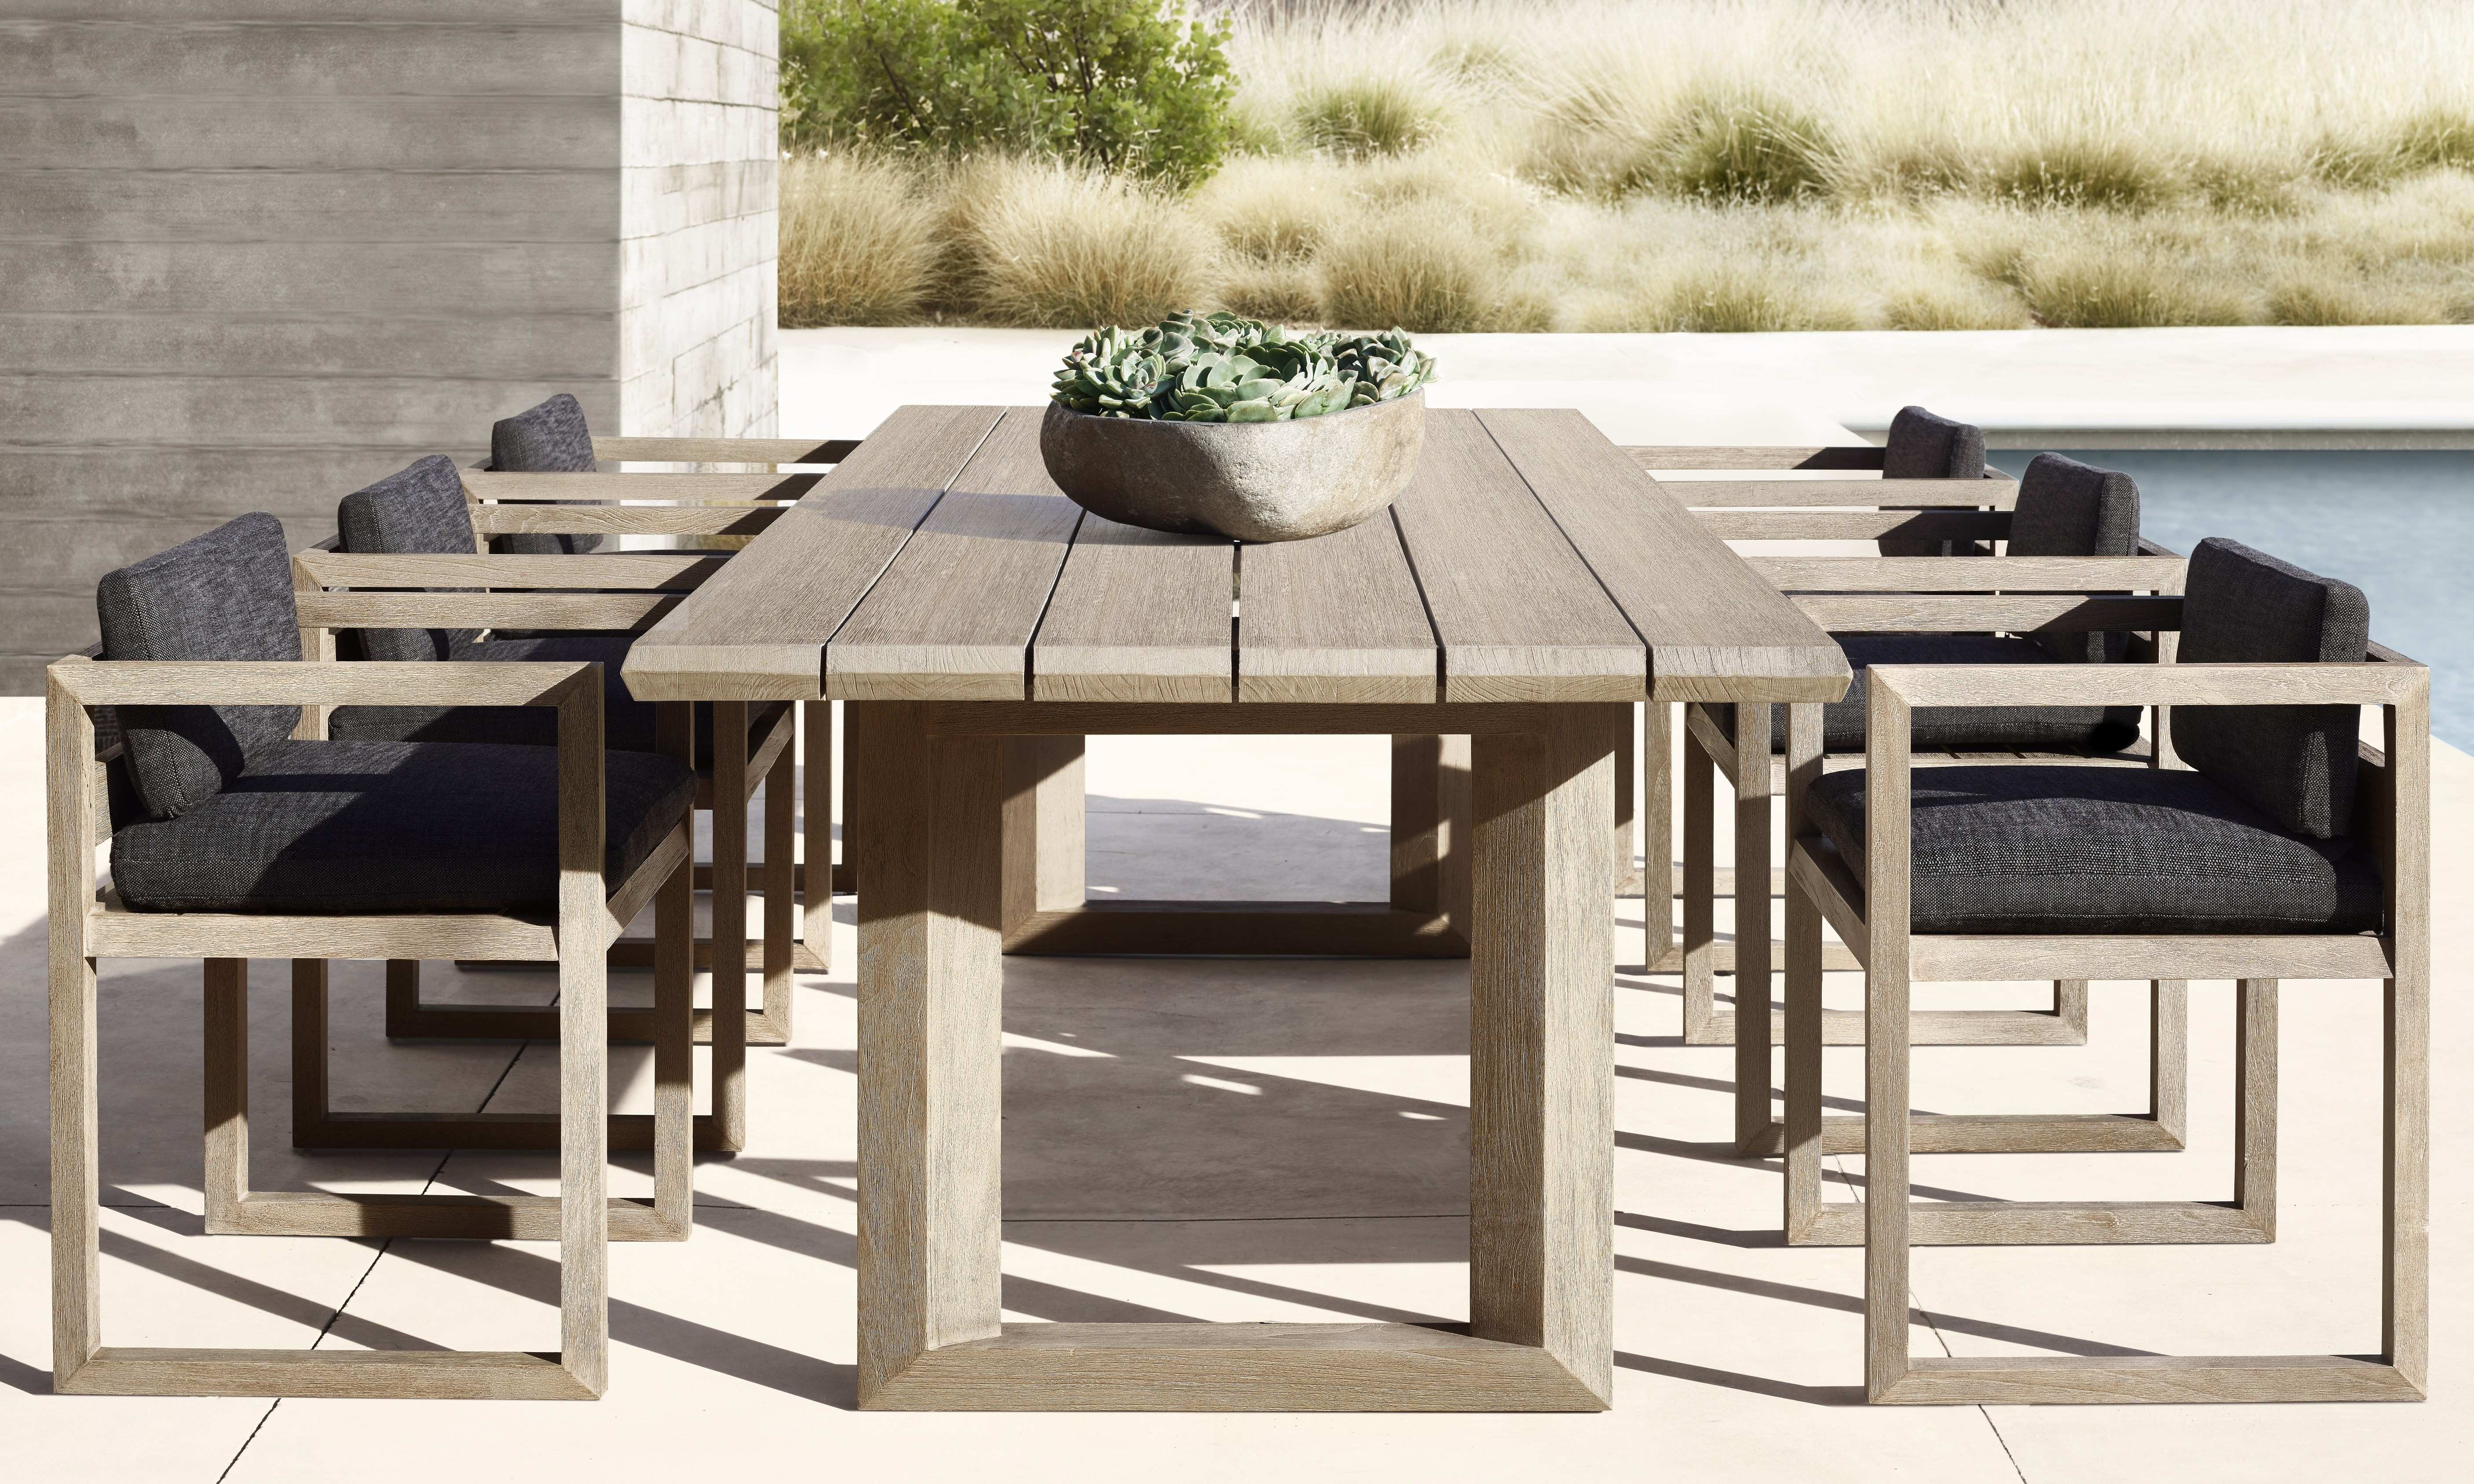 Outdoor Great Room Ideas Unique Tall Patio Table New Suzy Wong